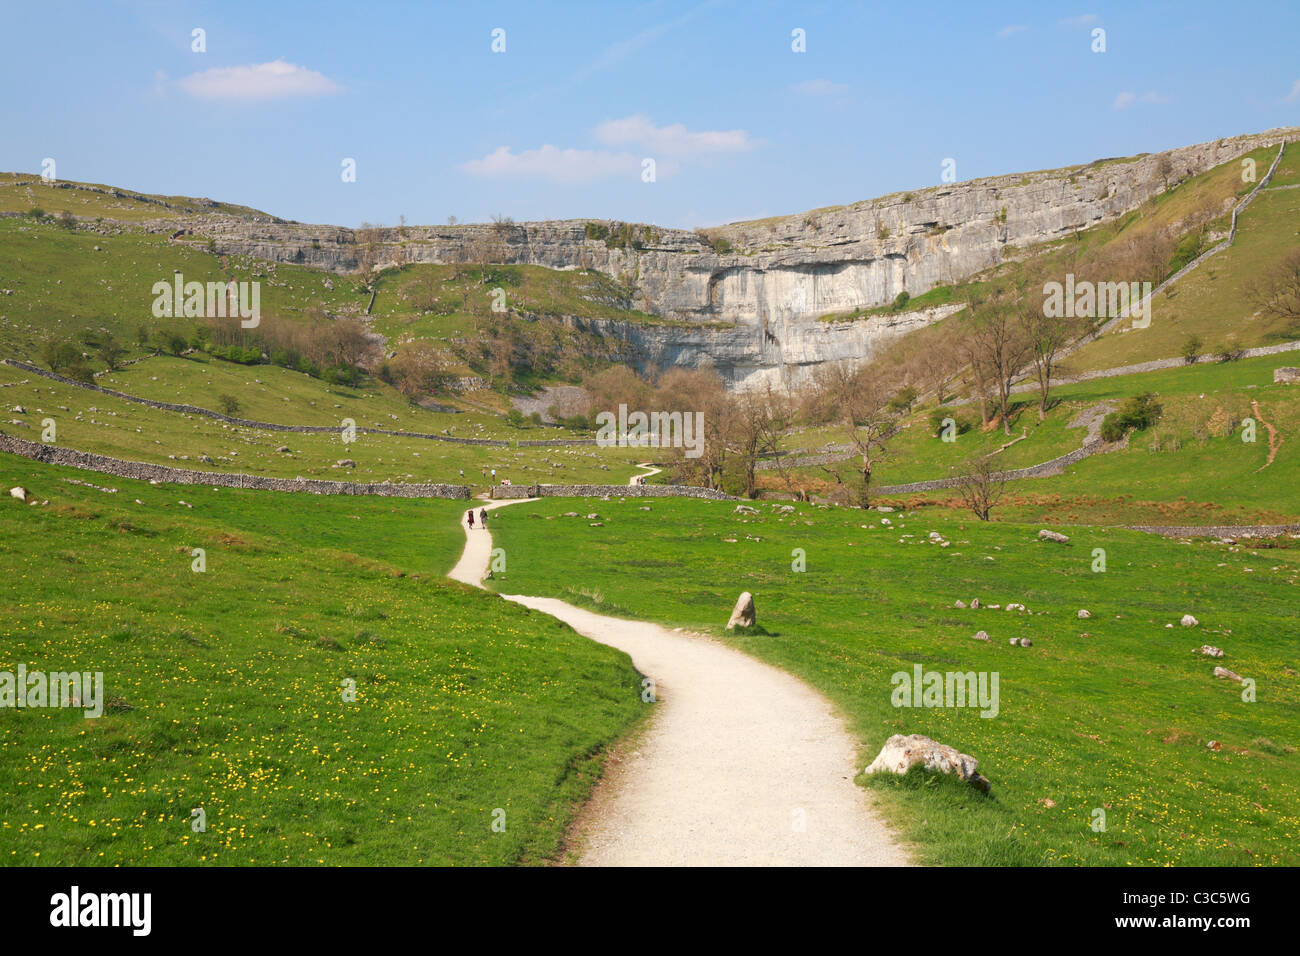 Walkers on the Pennine Way leading to Malham Cove, Malham, North Yorkshire, Yorkshire Dales National Park, England, - Stock Image